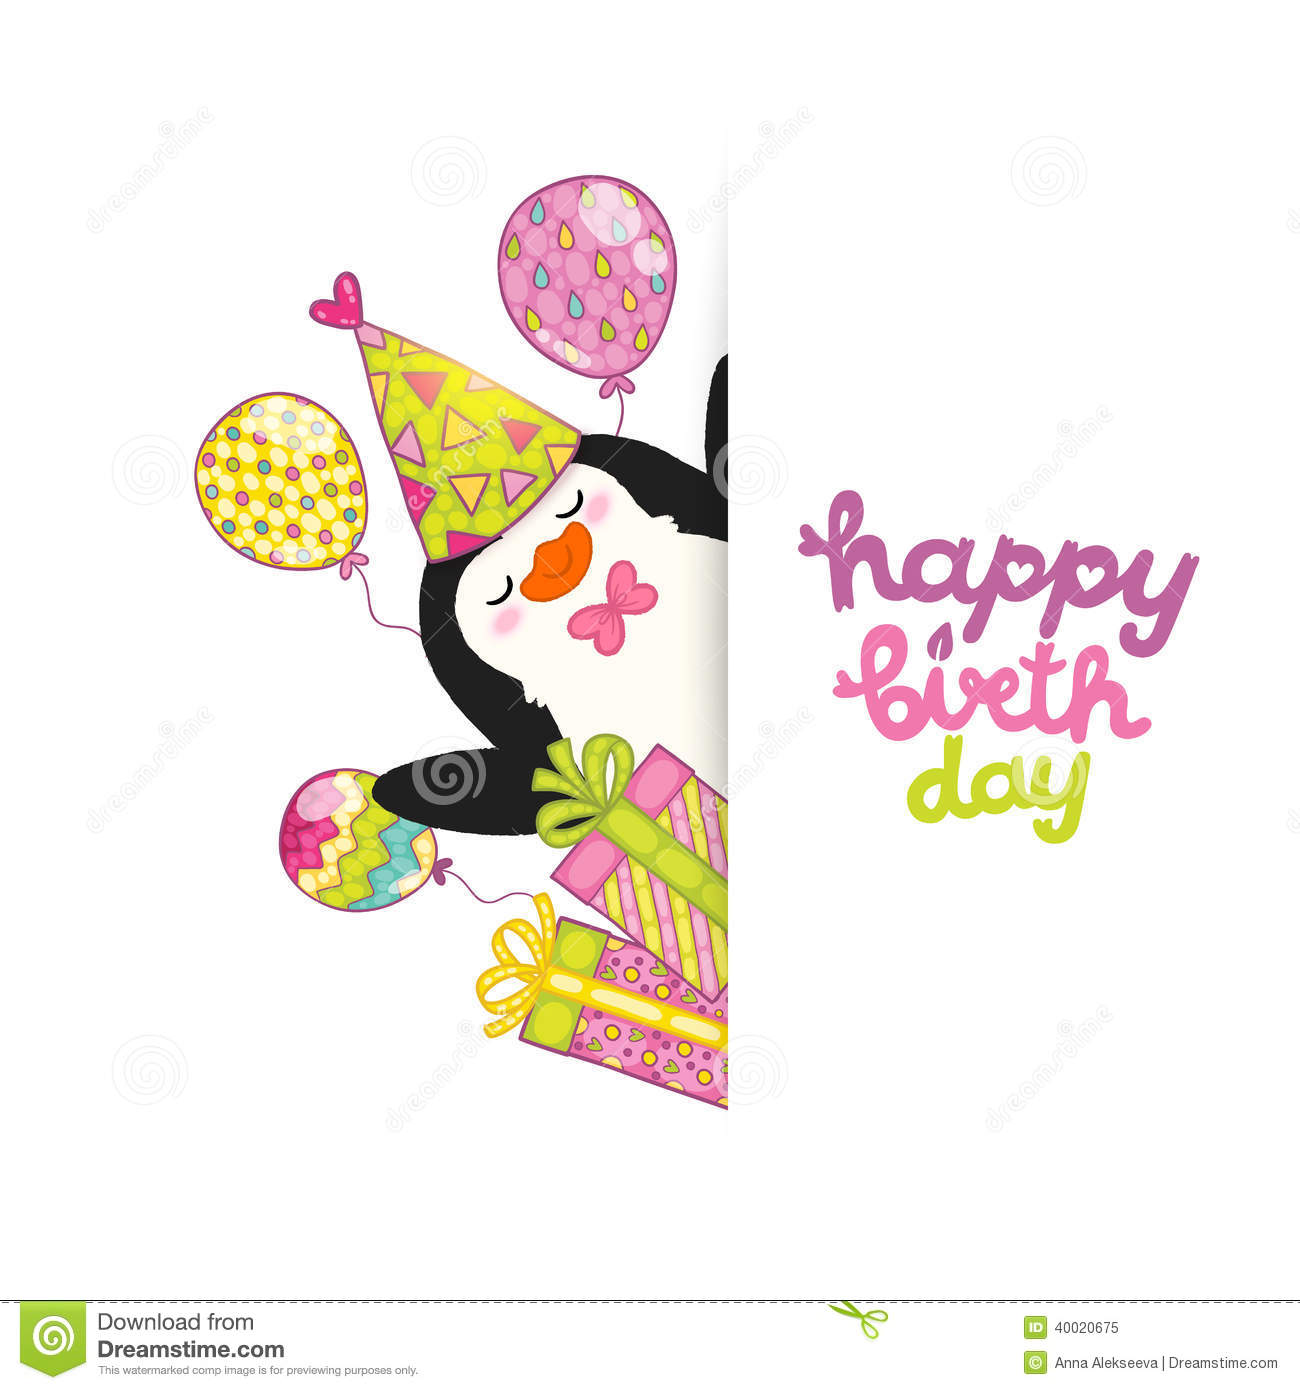 Cute Penguin Wallpaper Cartoon Happy Birthday Card Background With Cute Penguin Stock